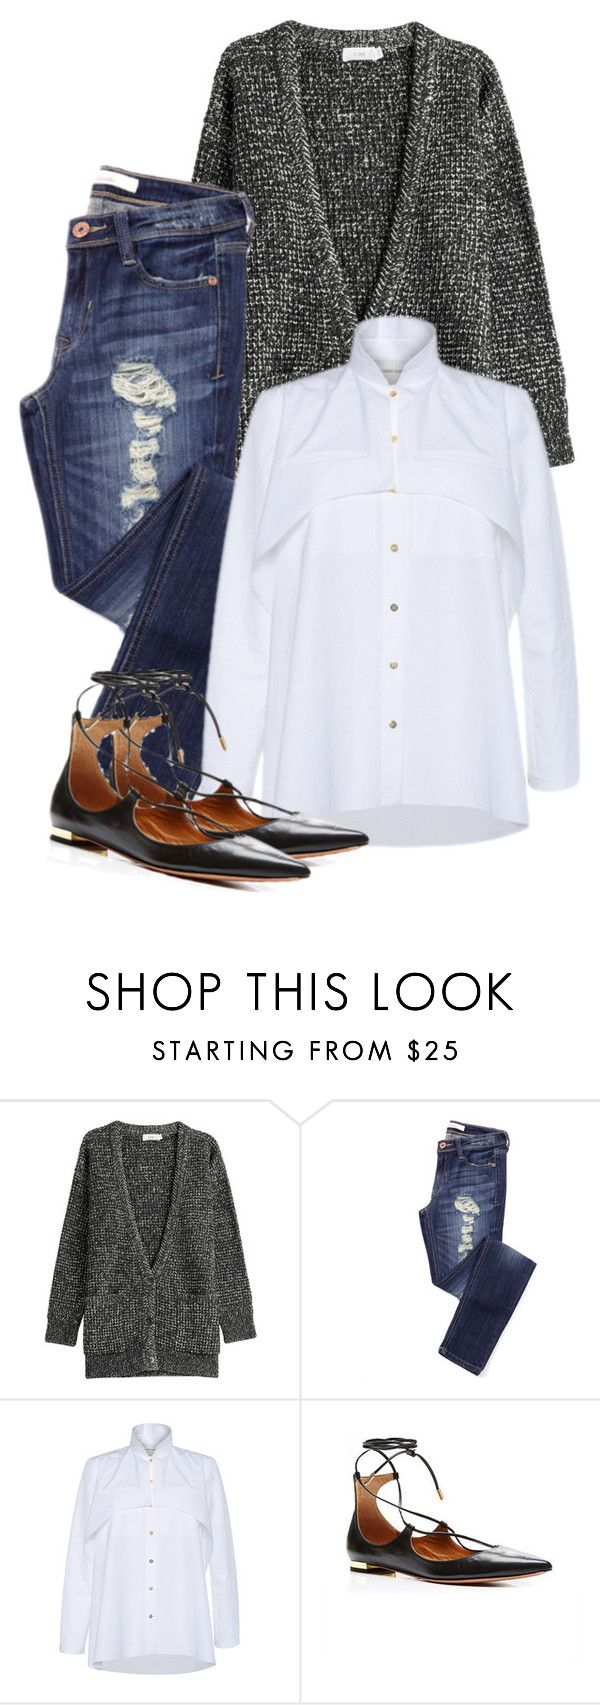 """Jeans"" by cherieaustin ❤ liked on Polyvore featuring Closed, Maison Rabih Kayrouz, Aquazzura, women's clothing, women, female, woman, misses and juniors"